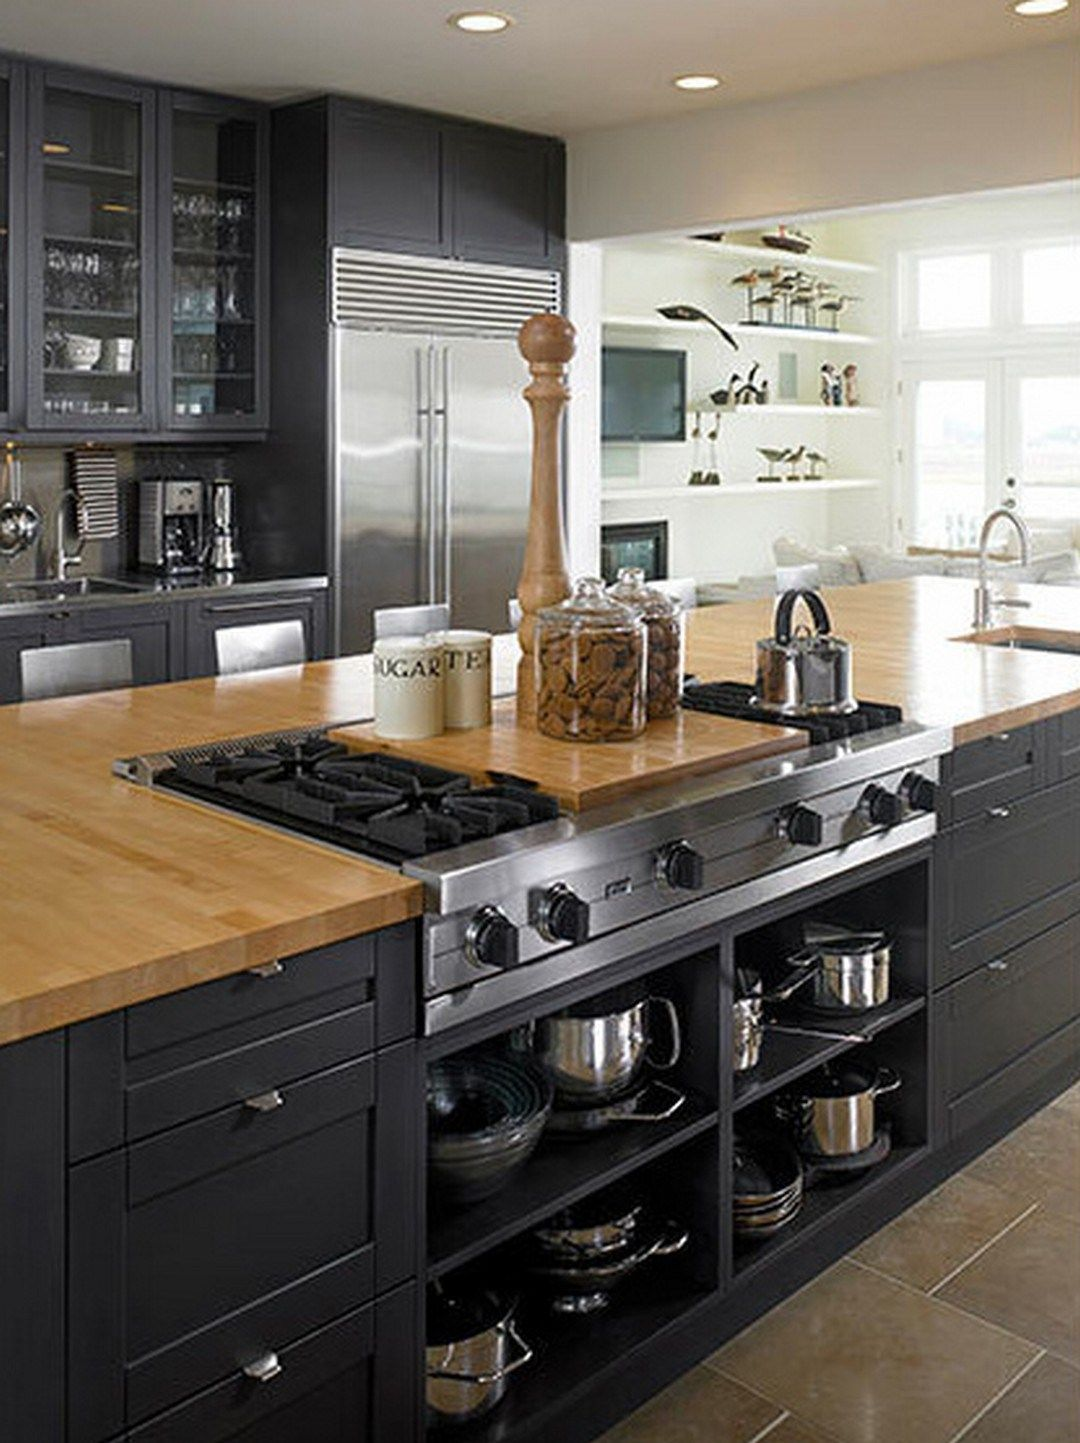 creative kitchen islands with stove top makeover ideas 16 ranch house in 2019 charcoal on kitchen island ideas black id=64305